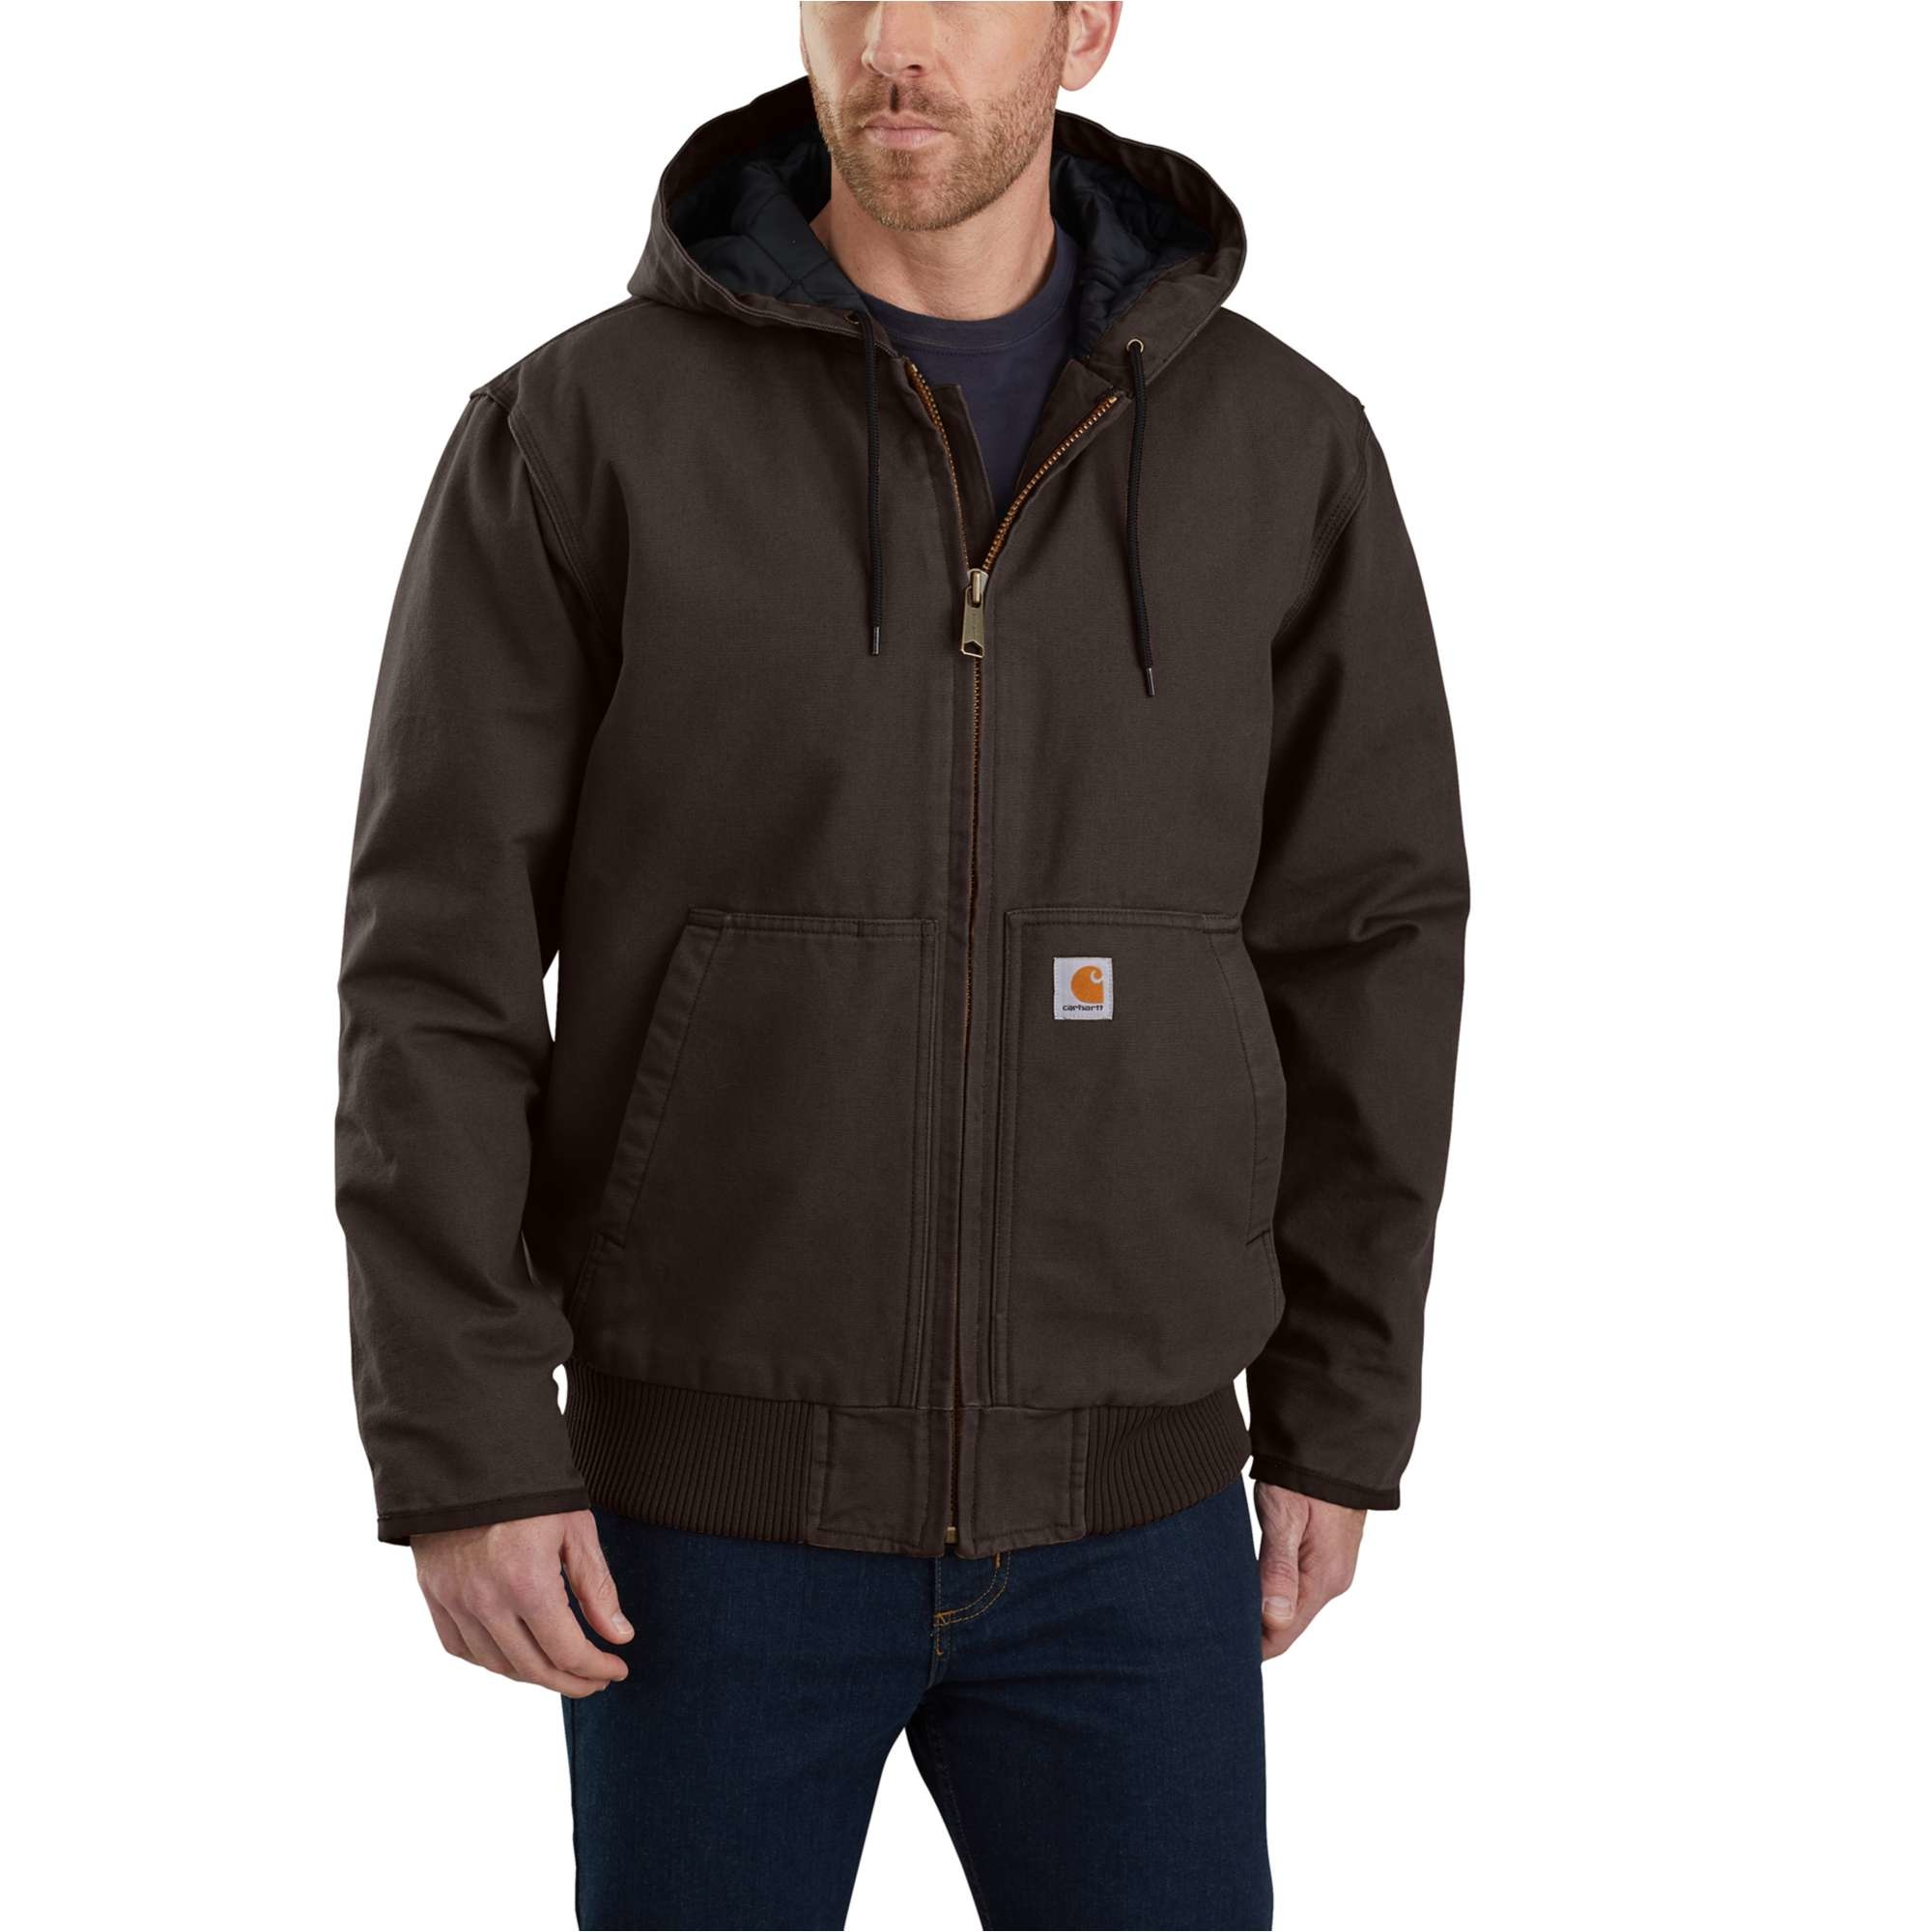 Carhartt Men S Washed Duck Insulated Active Jacket 104050 Country Traditions Clothing And Gift Shoppe [ 2000 x 2000 Pixel ]